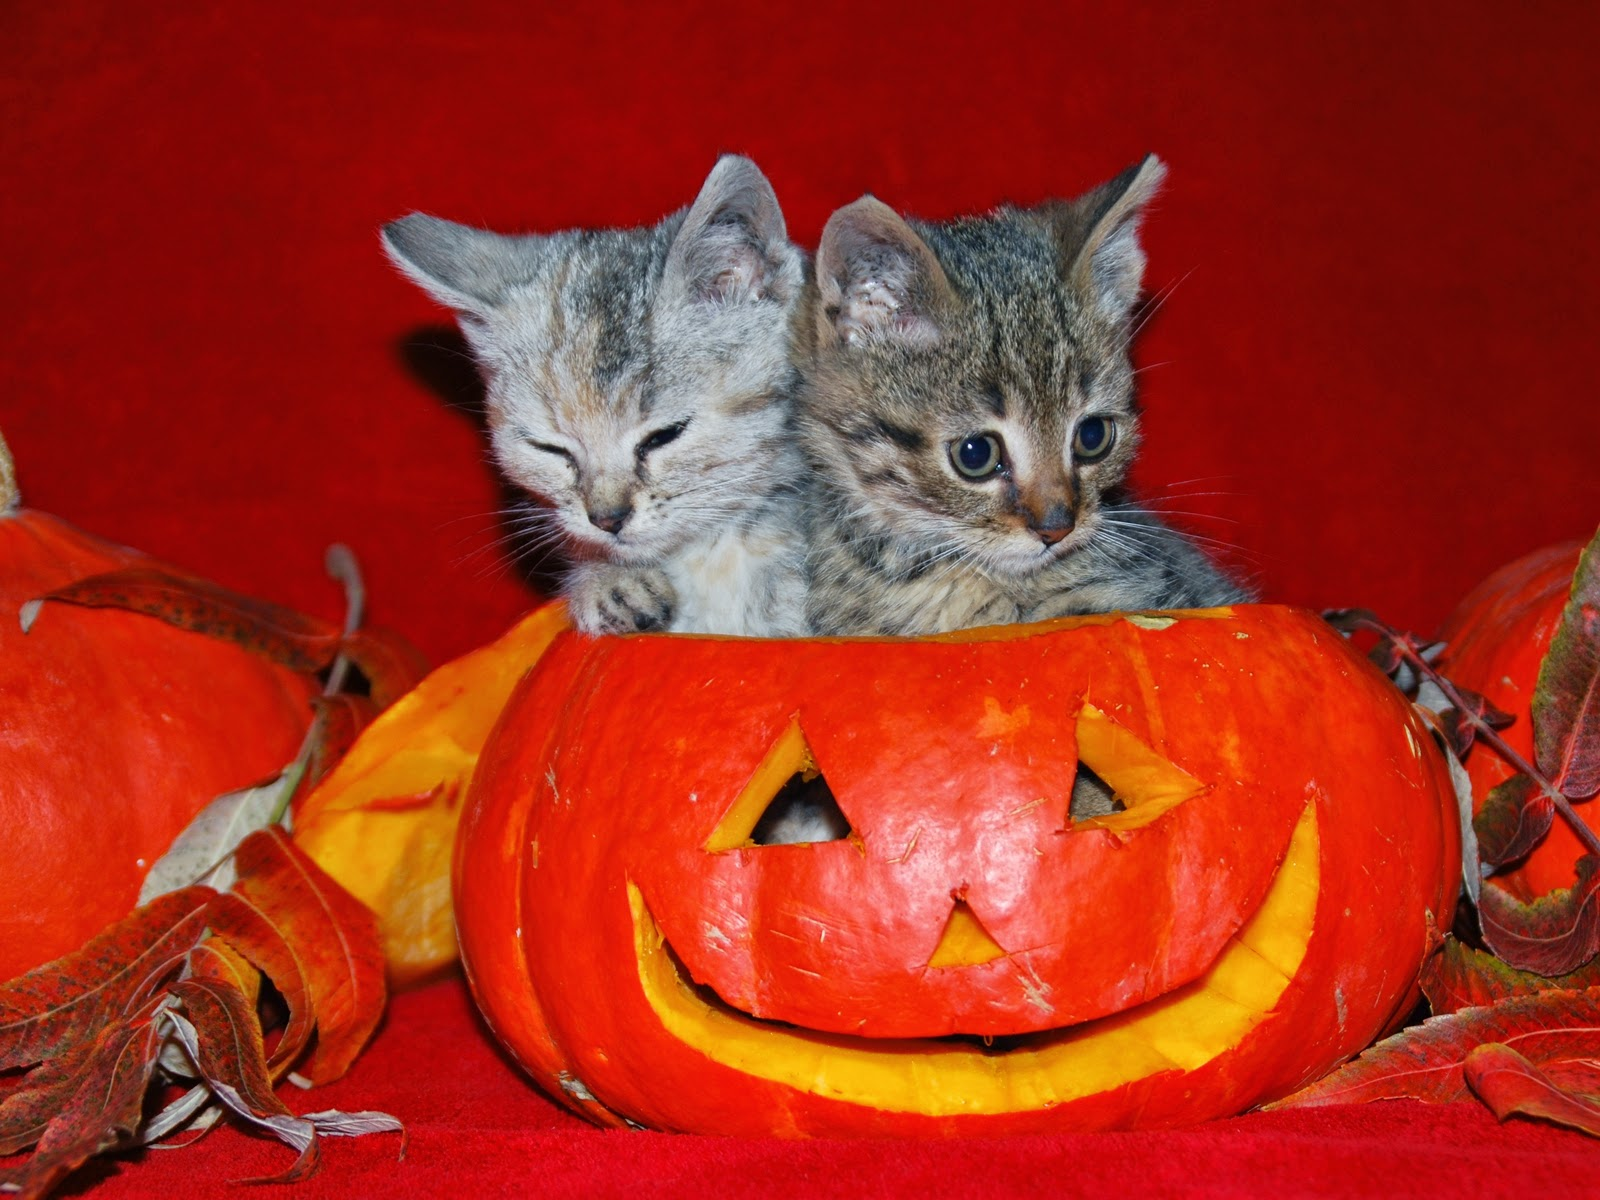 Cute and funny pictures of animals 73. Halloween pictures .